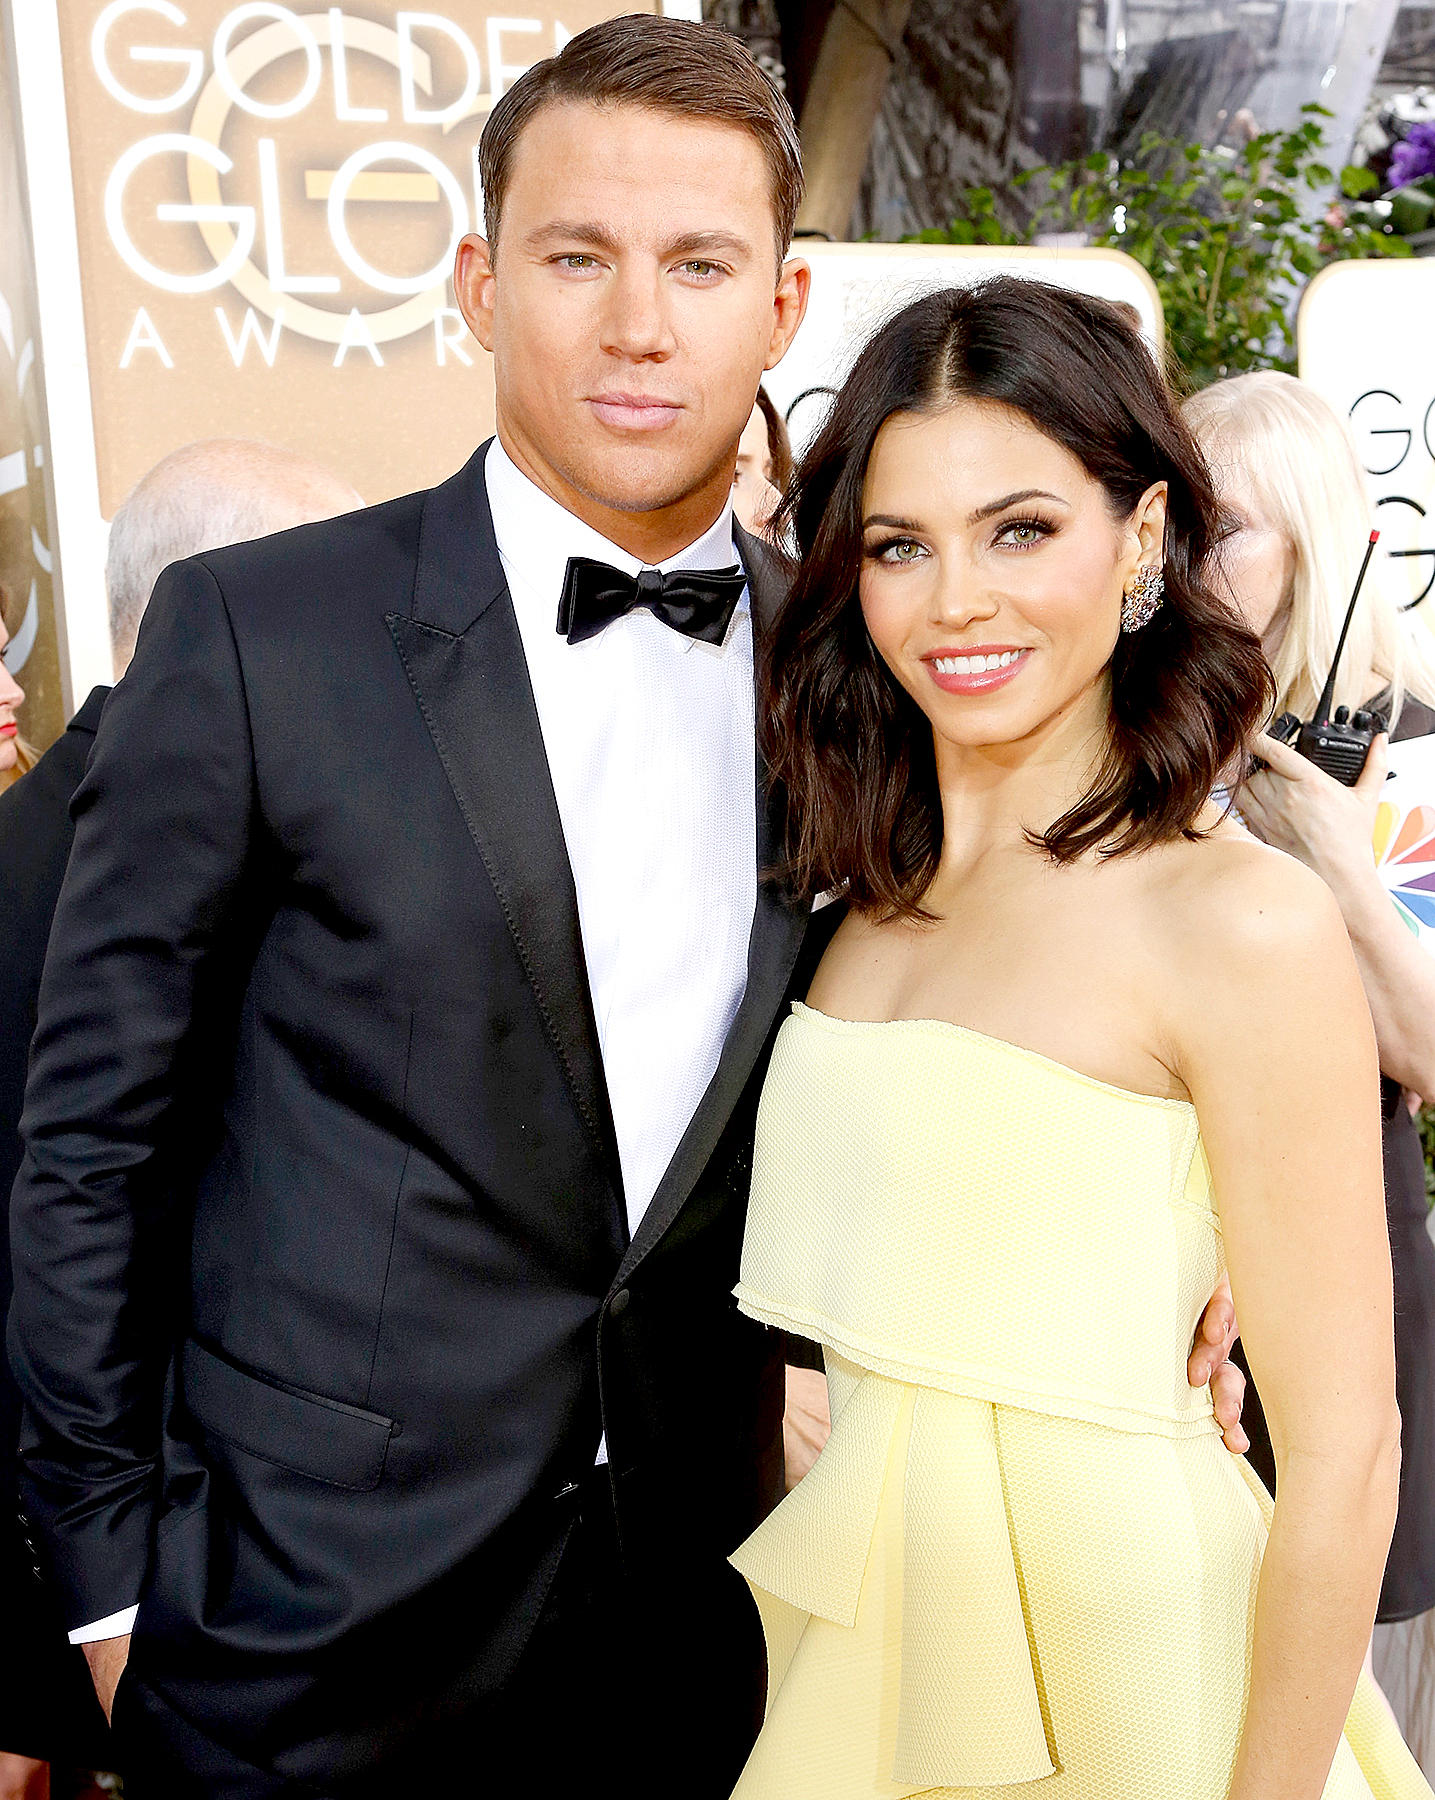 Channing Tatum and Jenna Dewan arrive to the 72nd Annual Golden Globe Awards held at the Beverly Hilton Hotel on January 11, 2015.